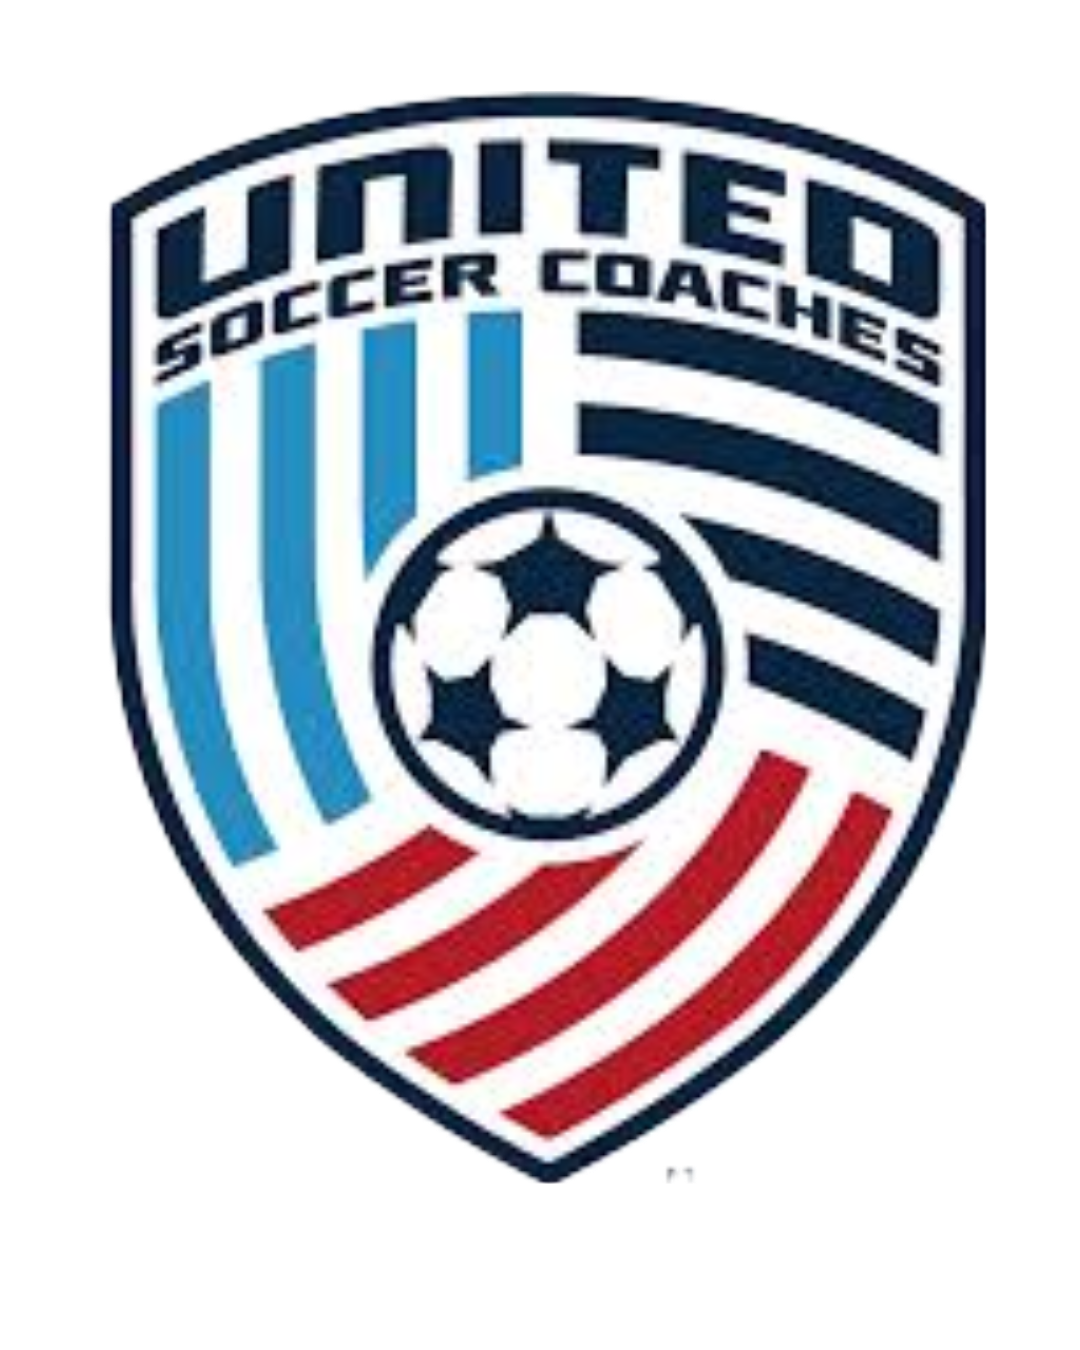 https://unitedsoccercoaches.org